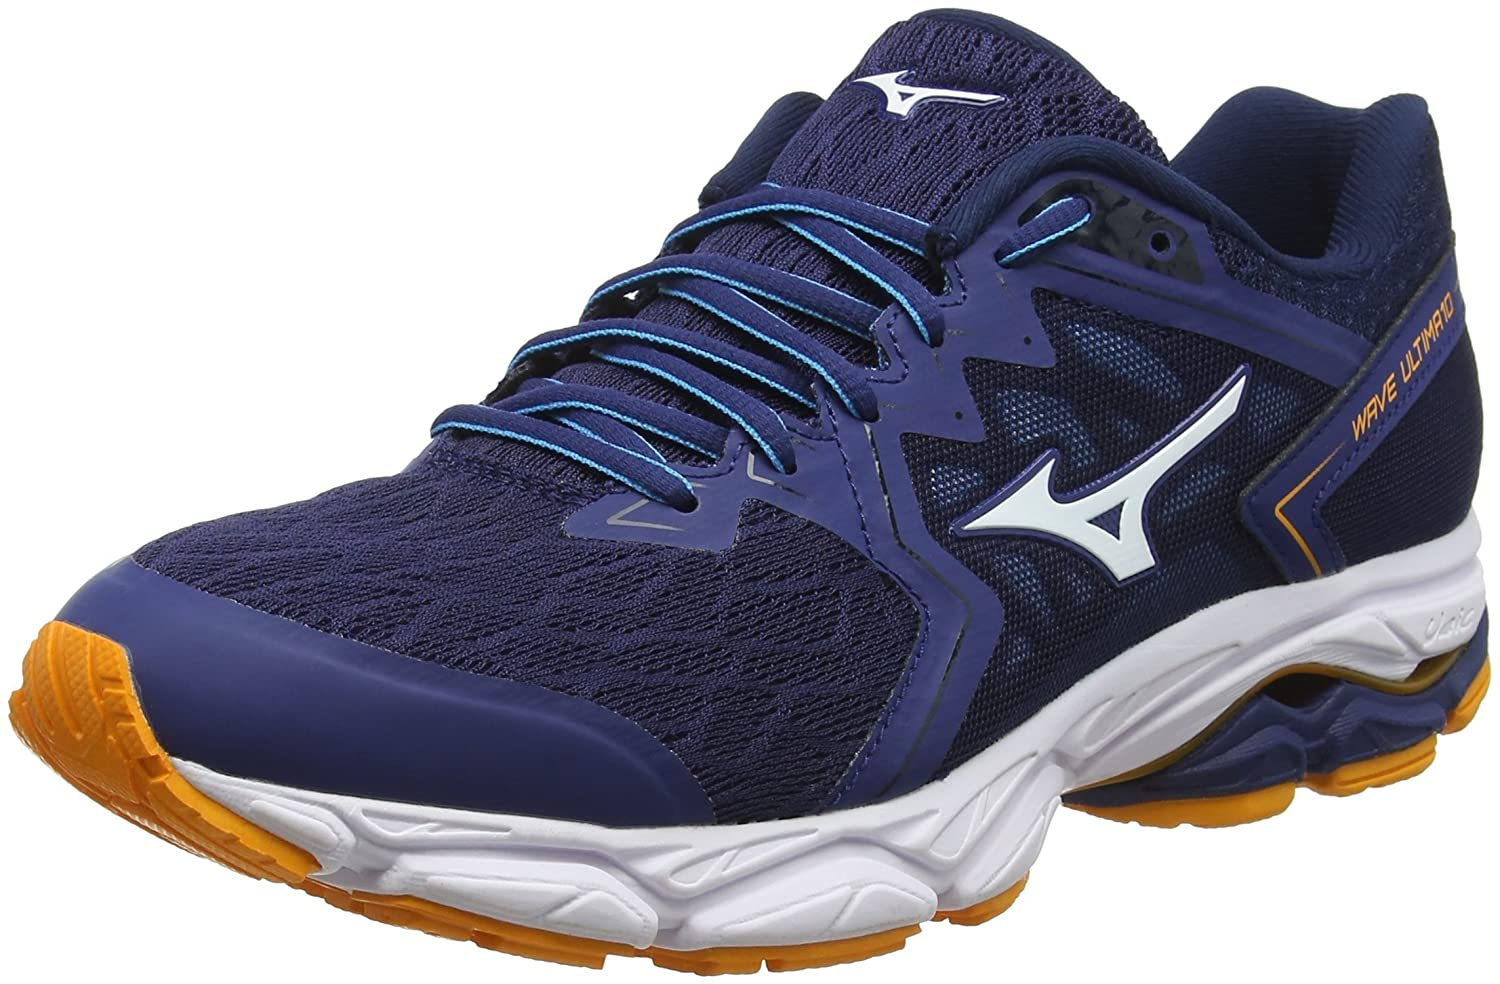 Mizuno Wave Ultima 10, Zapatillas para Hombre 48.5 EU|Multicolor (Blue/White/Forange 001)